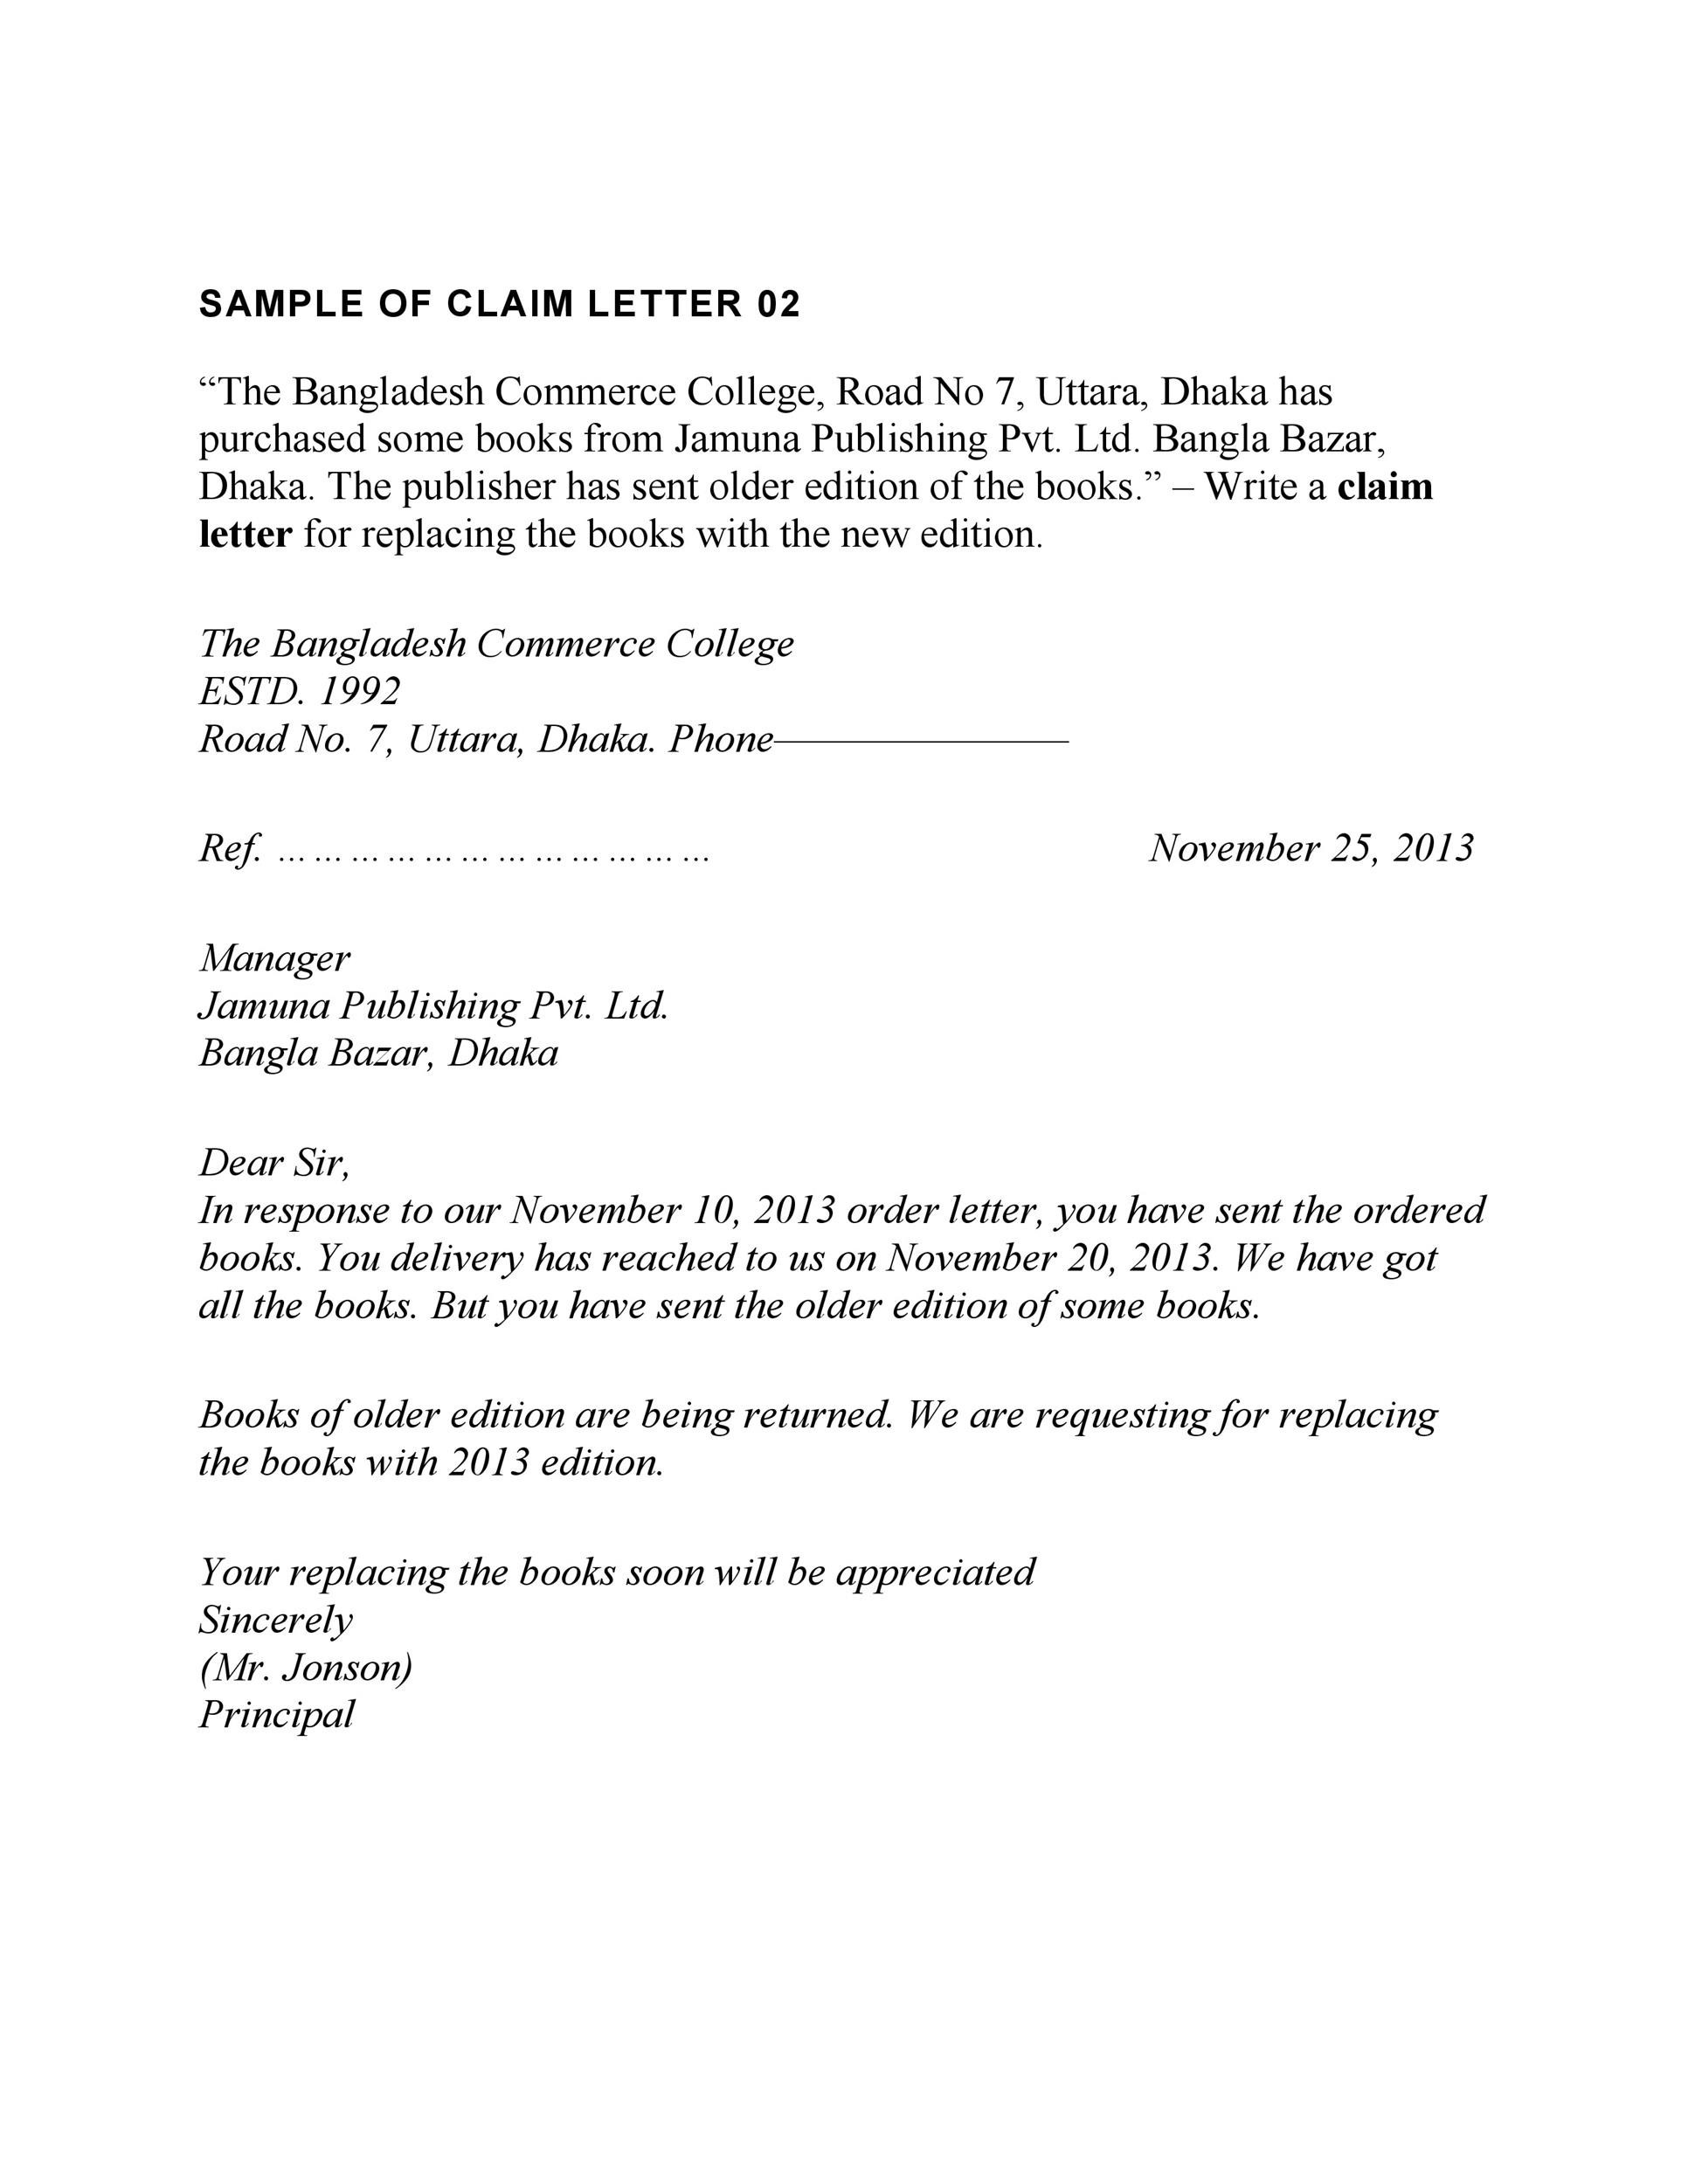 Claims Letter | 49 Free Claim Letter Examples How To Write A Claim Letter